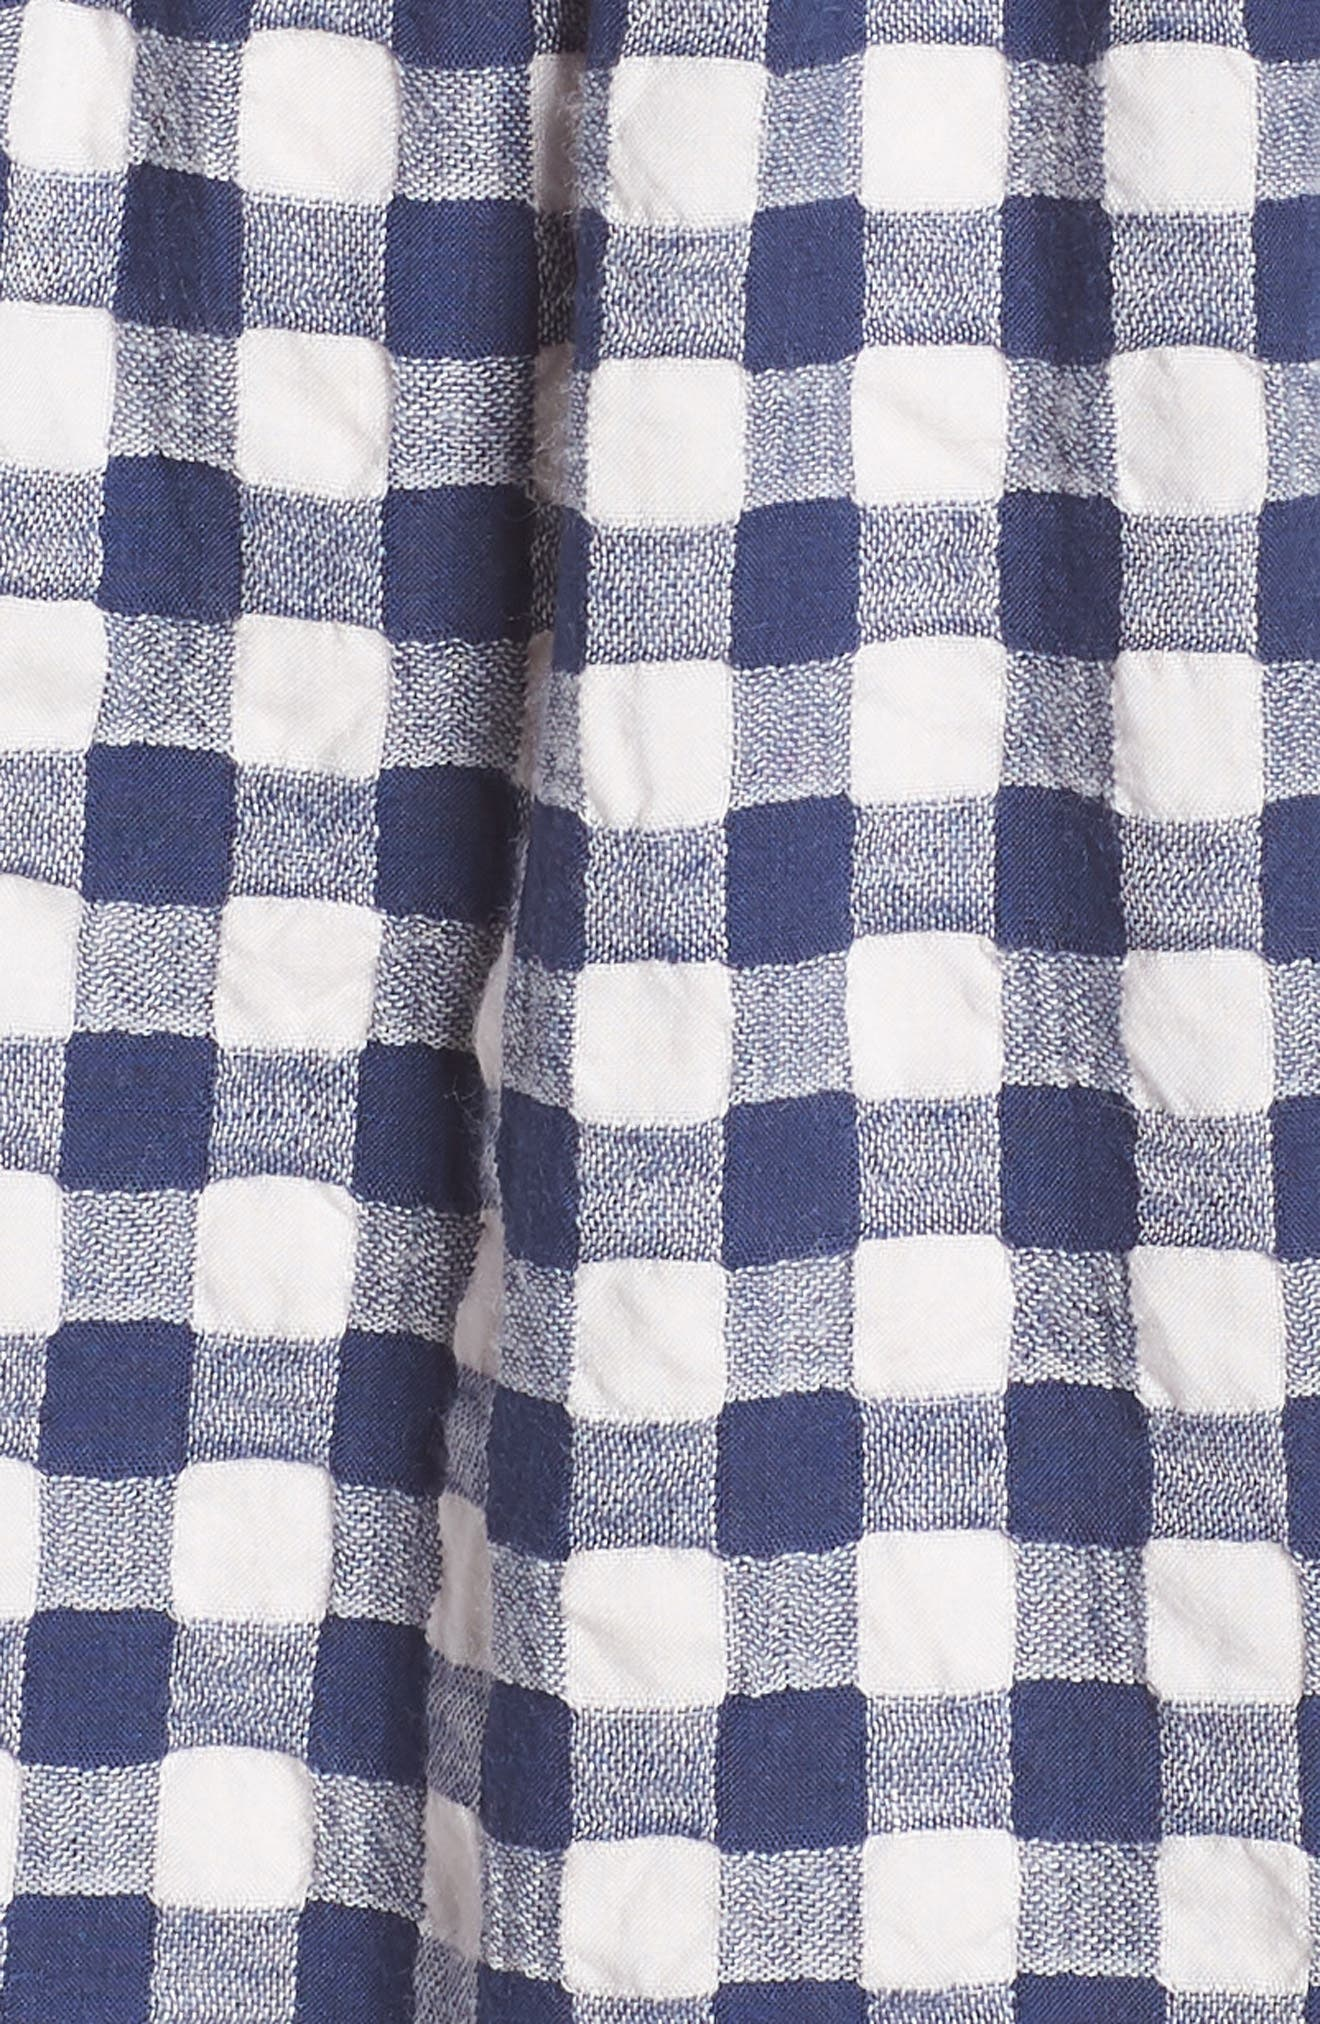 Tiered Gingham Midi Dress,                             Alternate thumbnail 5, color,                             Navy